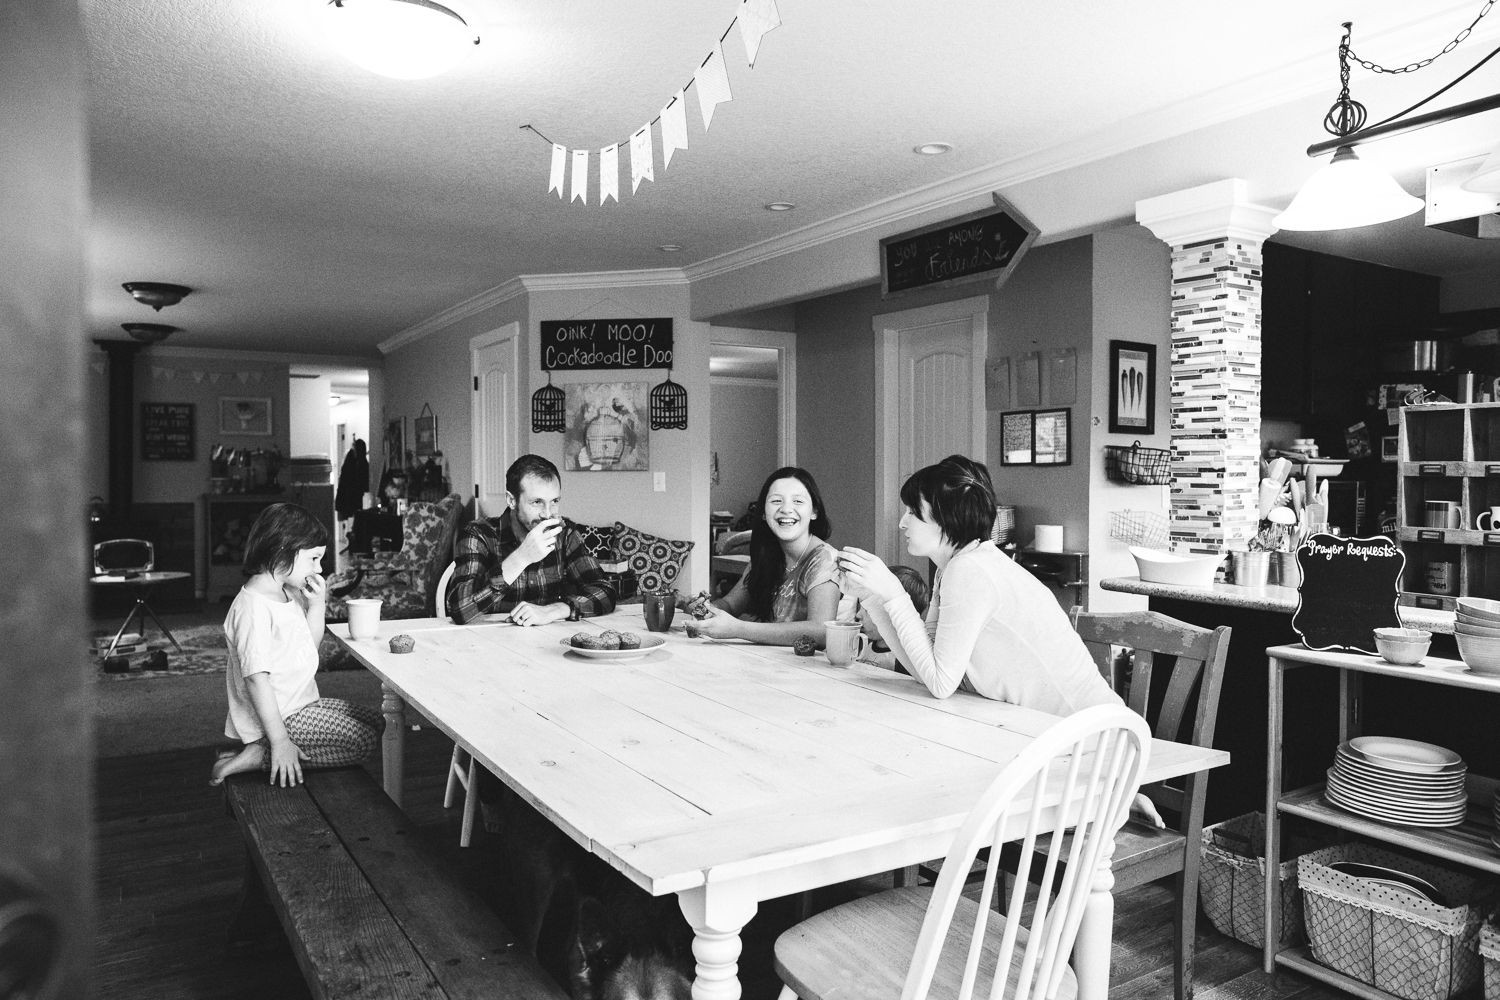 family eating together at the table